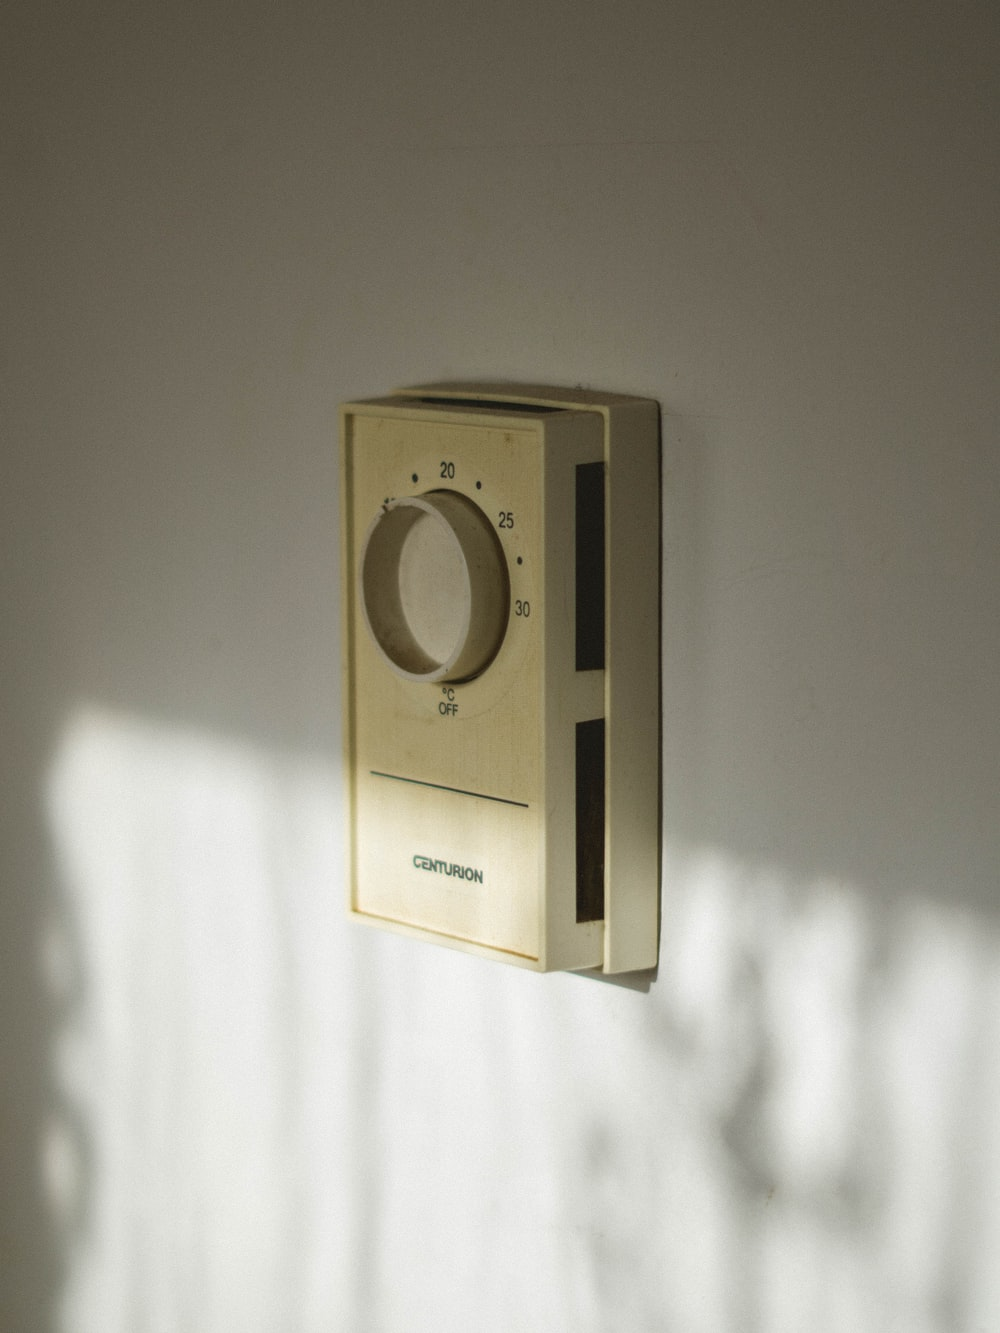 beige Centurion home appliance controller on wall